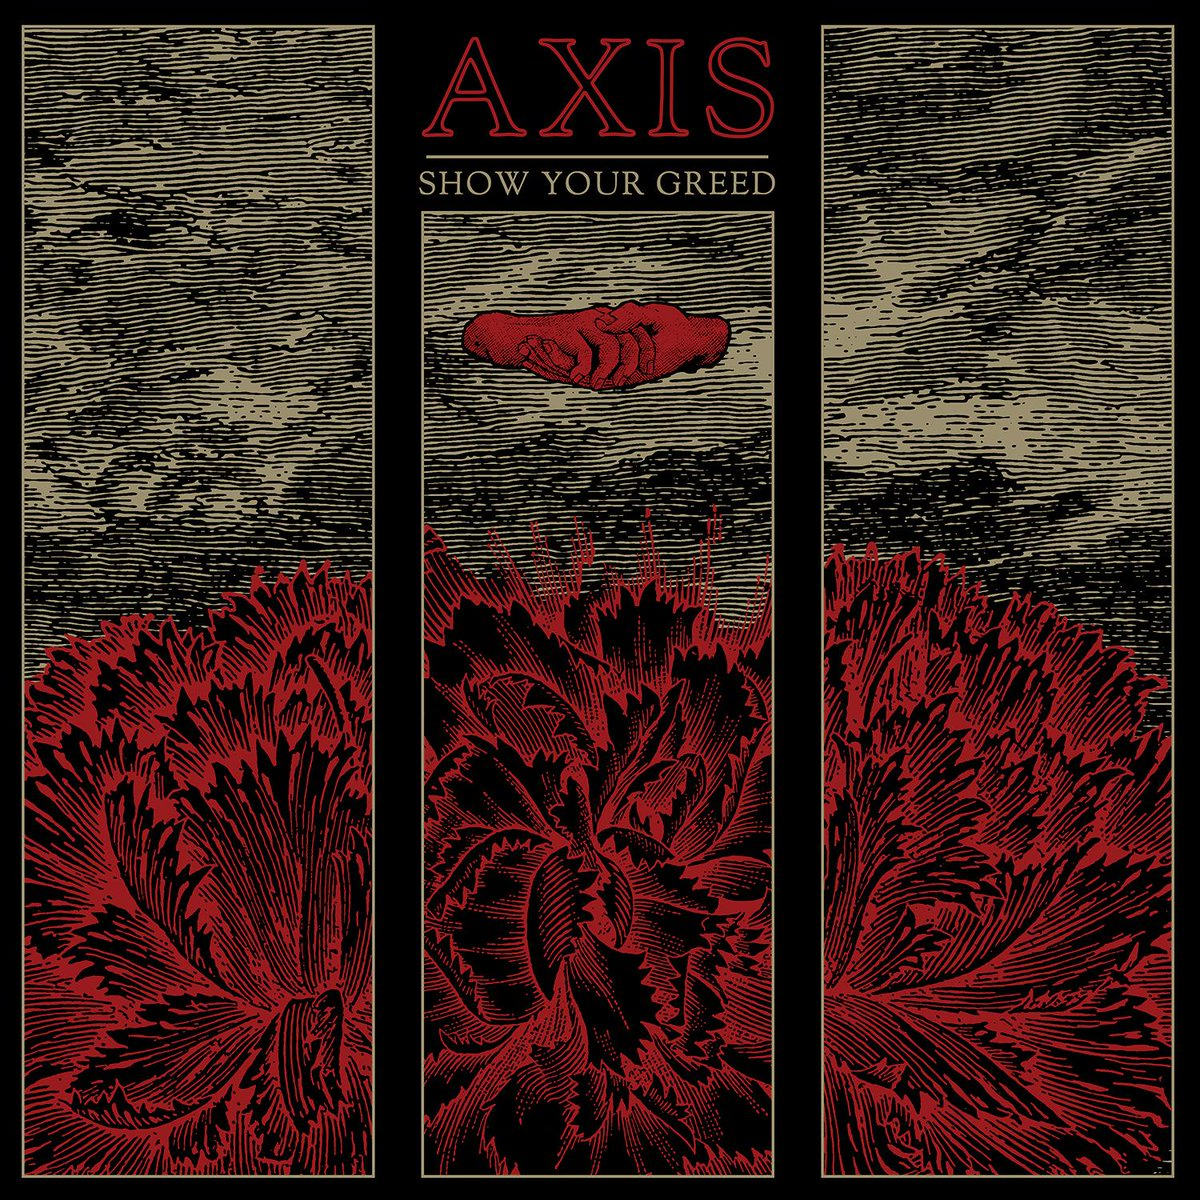 AXIS - Show Your Greed is out NOW! Grab your copy now at @merchnow http://t.co/5a1Fkc78X6! @AXISFL http://t.co/NRvDOTvFbj